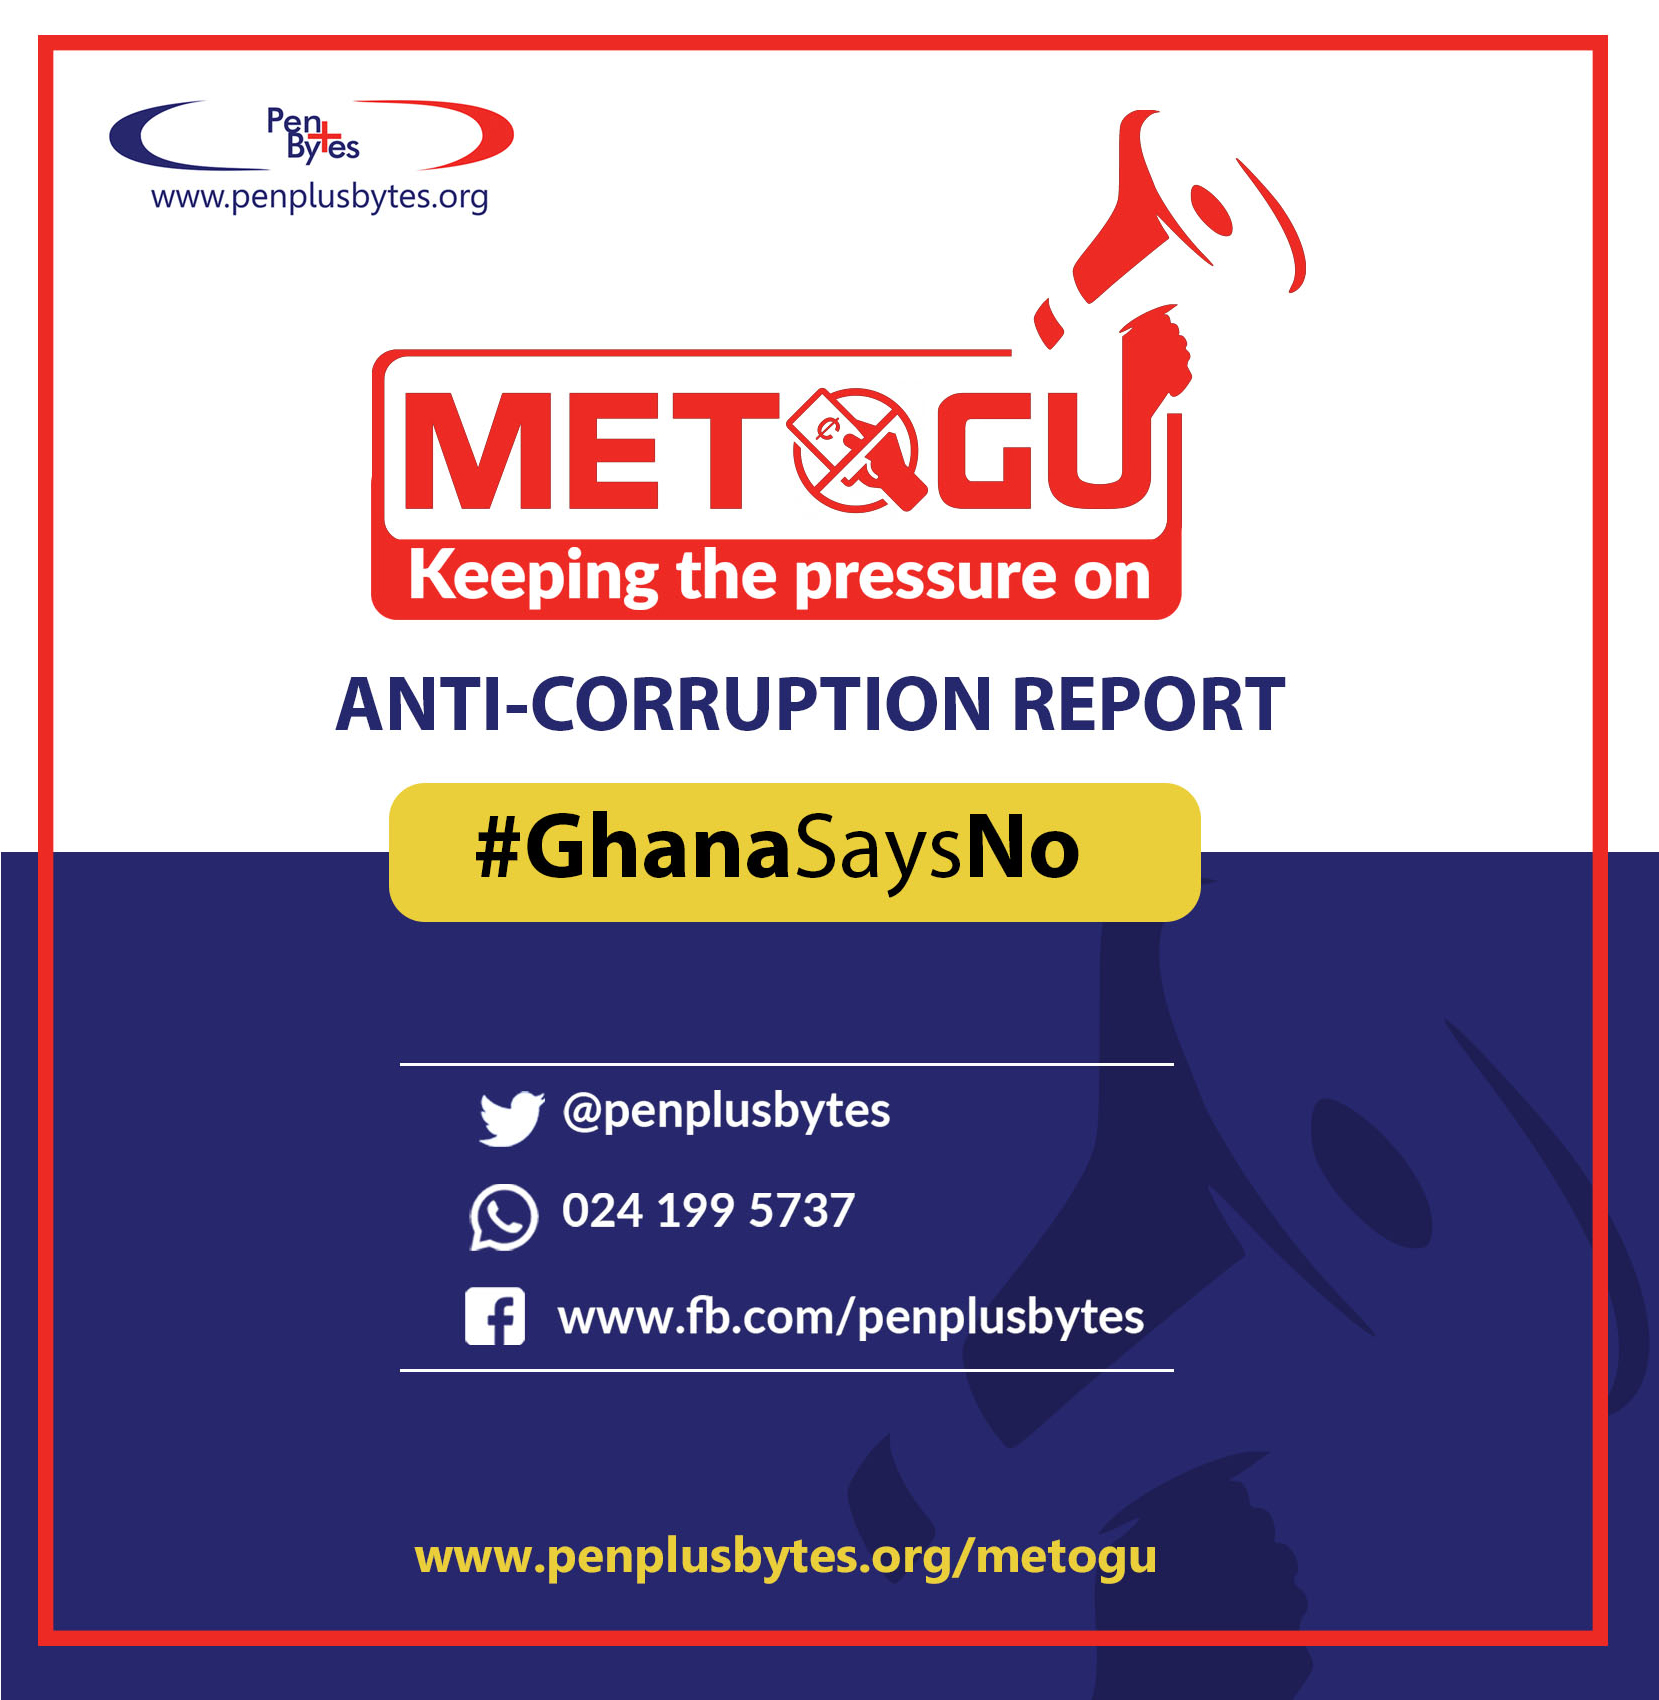 NPP Government losing the fight against corruption – 7 out of 10 Ghanaians say